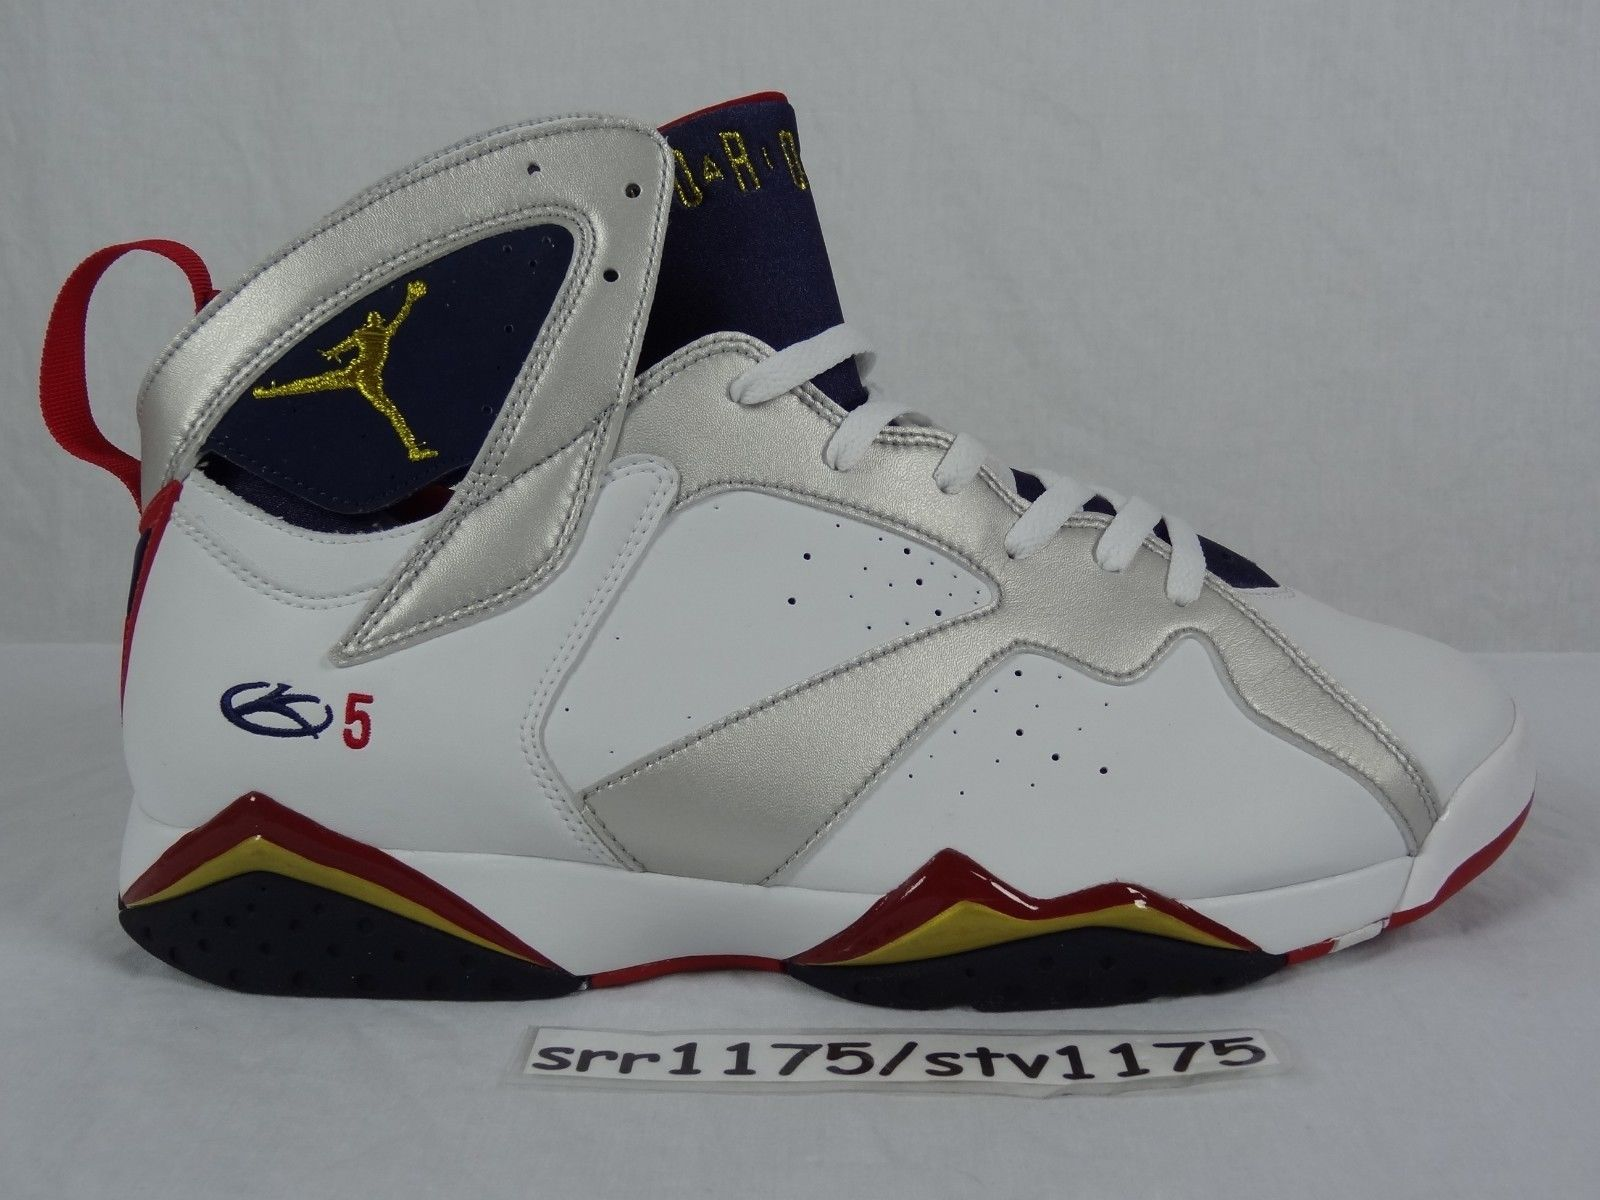 huge selection of 70b1d 24061 ... new zealand air jordan 7 team usa player exclusive samples jason kidd  cf993 d7926